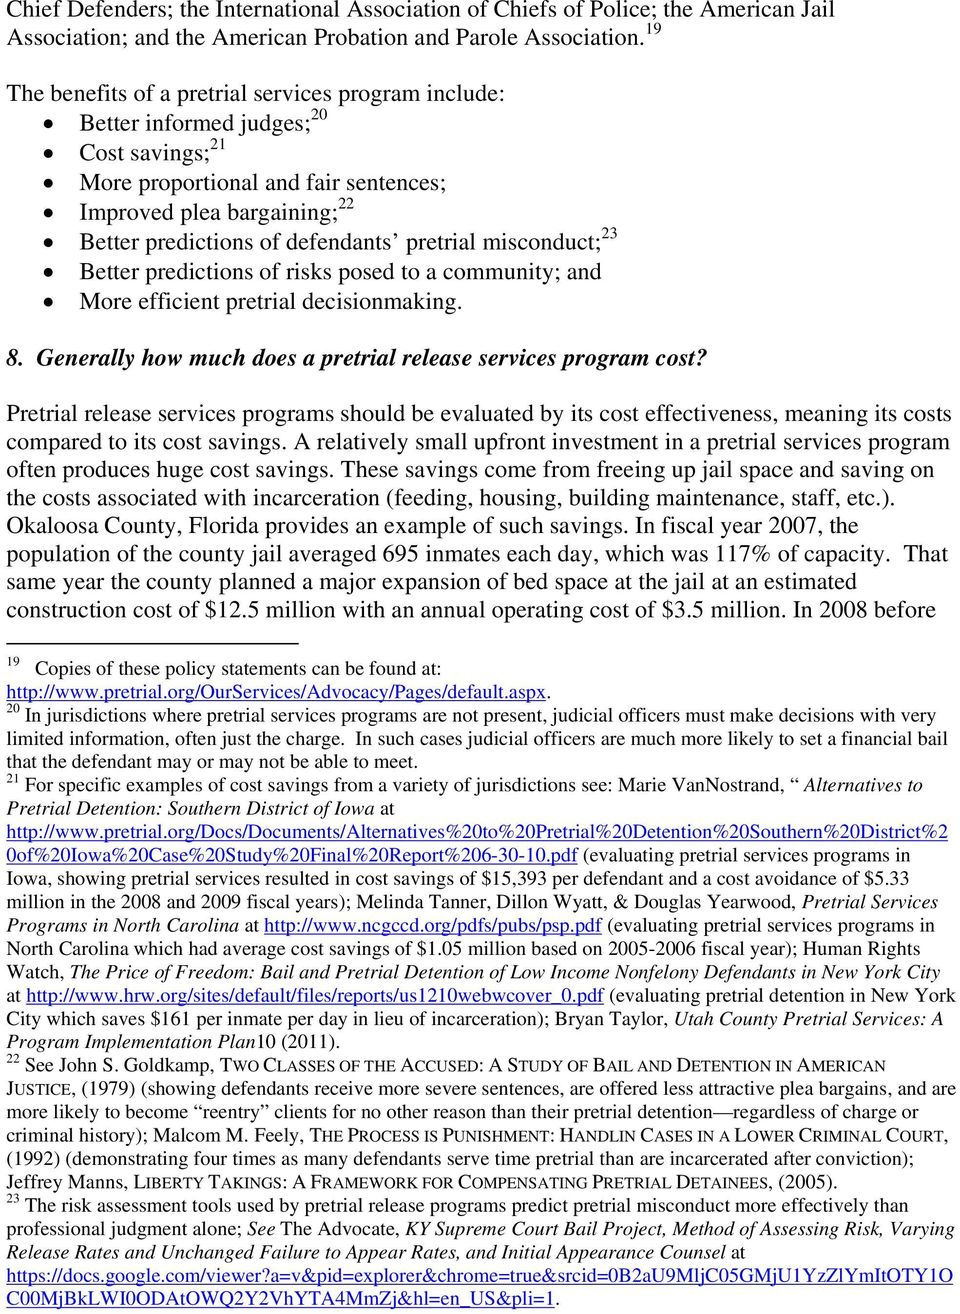 FREQUENTLY ASKED QUESTIONS ABOUT PRETRIAL RELEASE DECISION MAKING - PDF